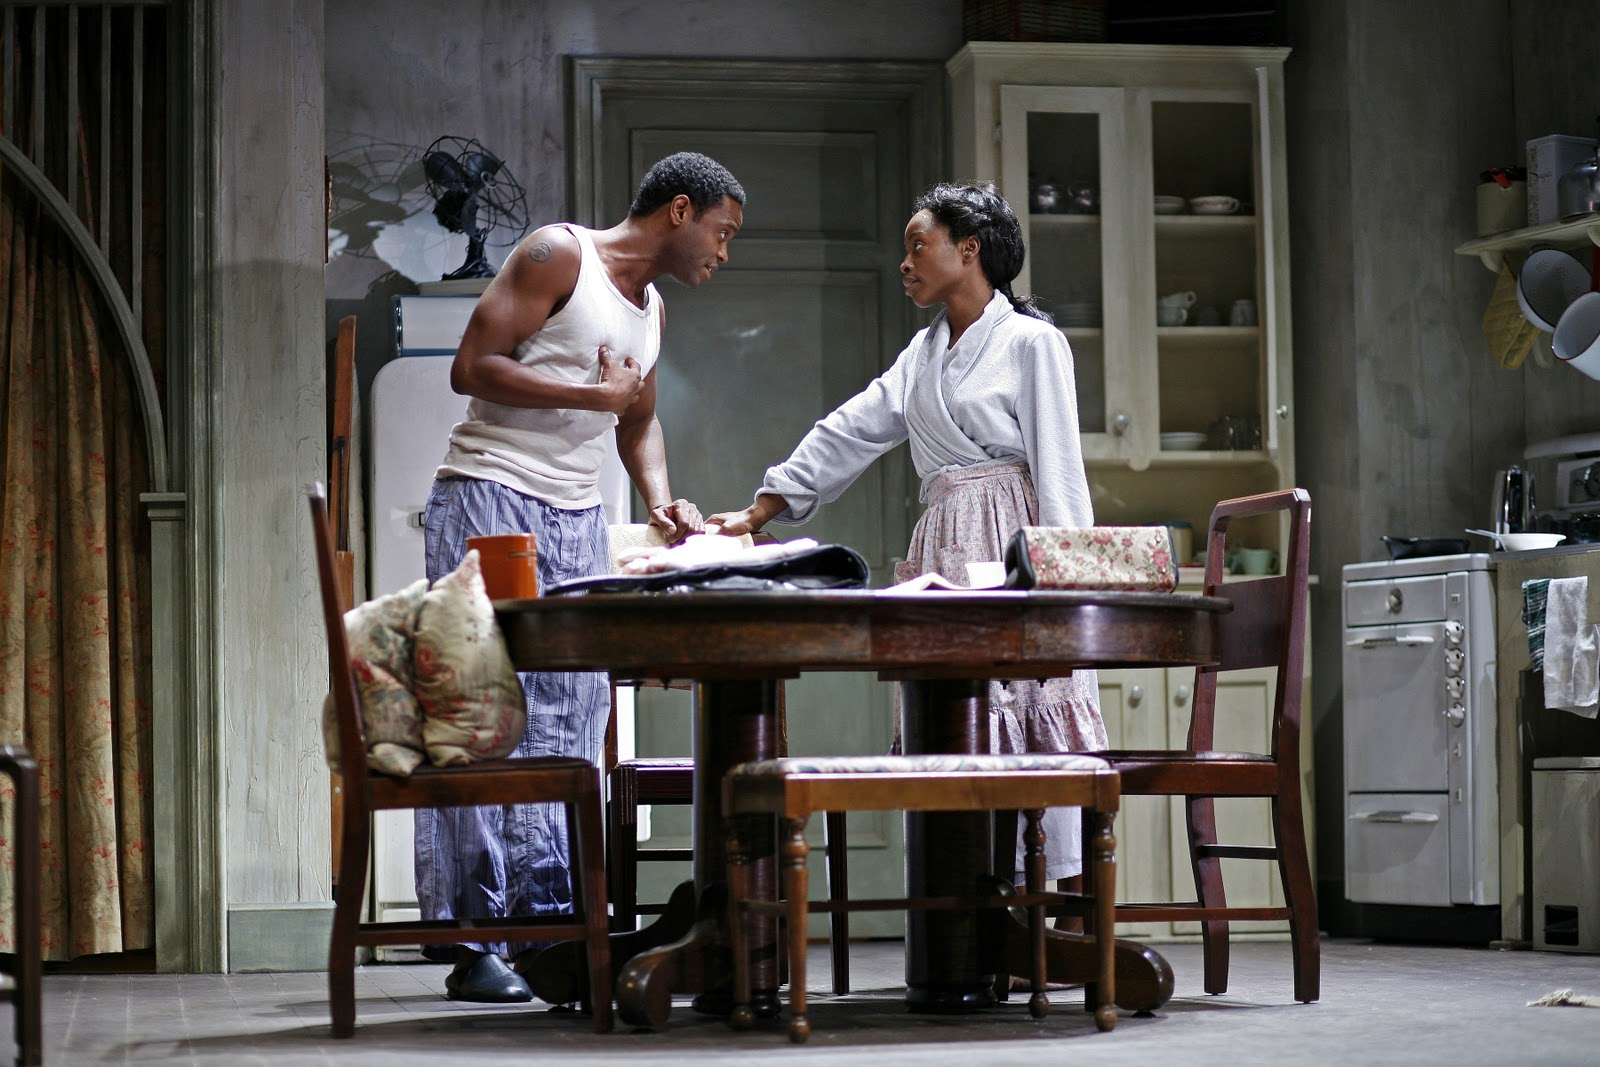 compare contrast a raisin in the What's the difference between a raisin in the sun the play and a raisin in the sun the movie.